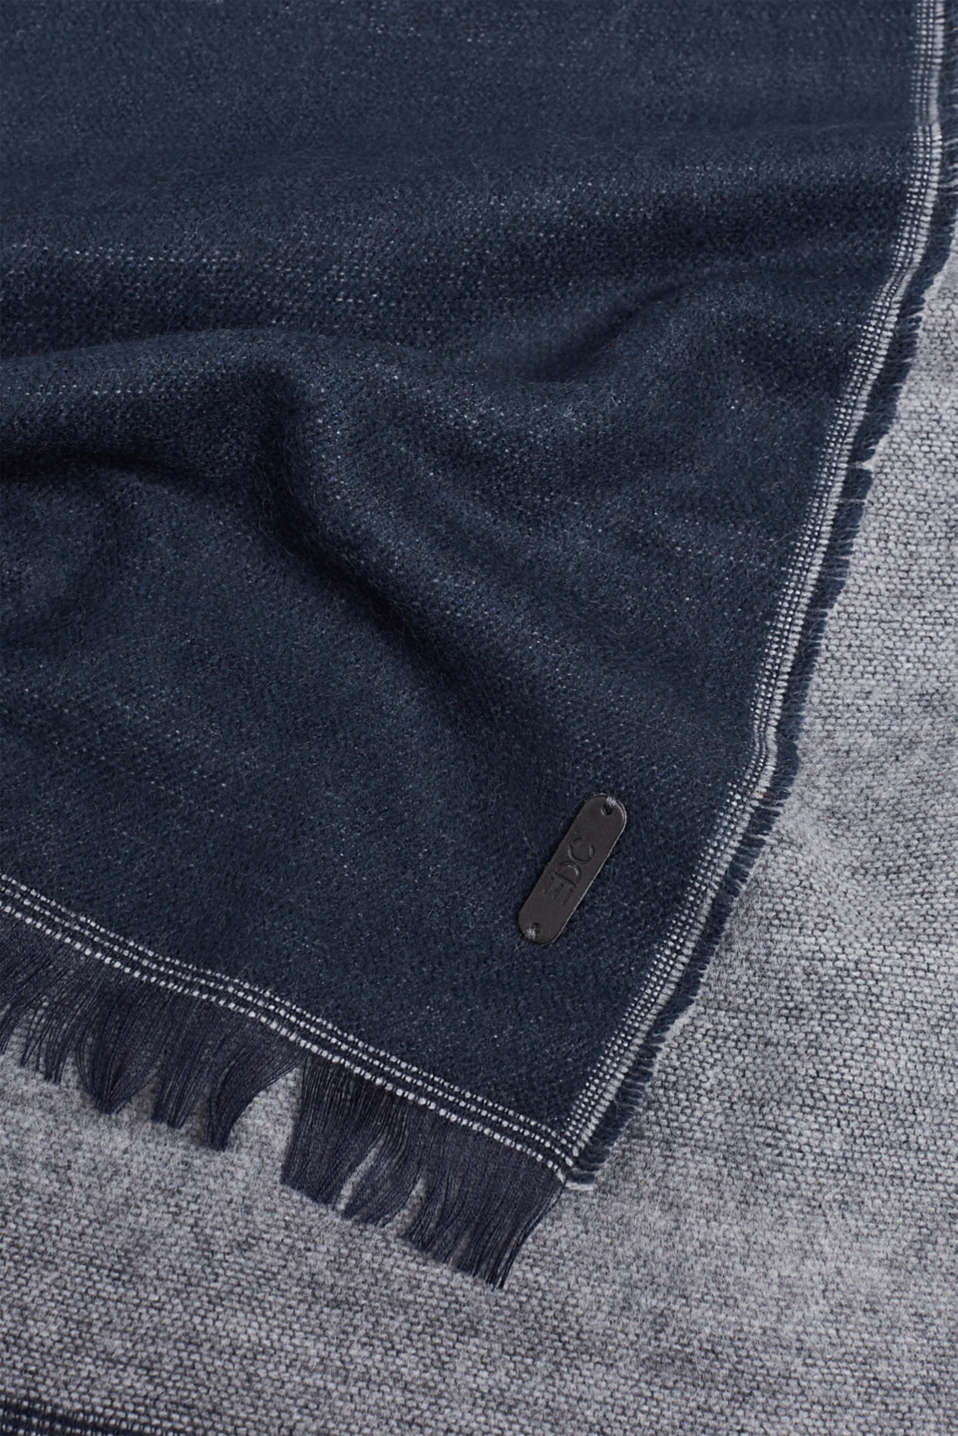 Double-faced fringed scarf, NAVY, detail image number 2